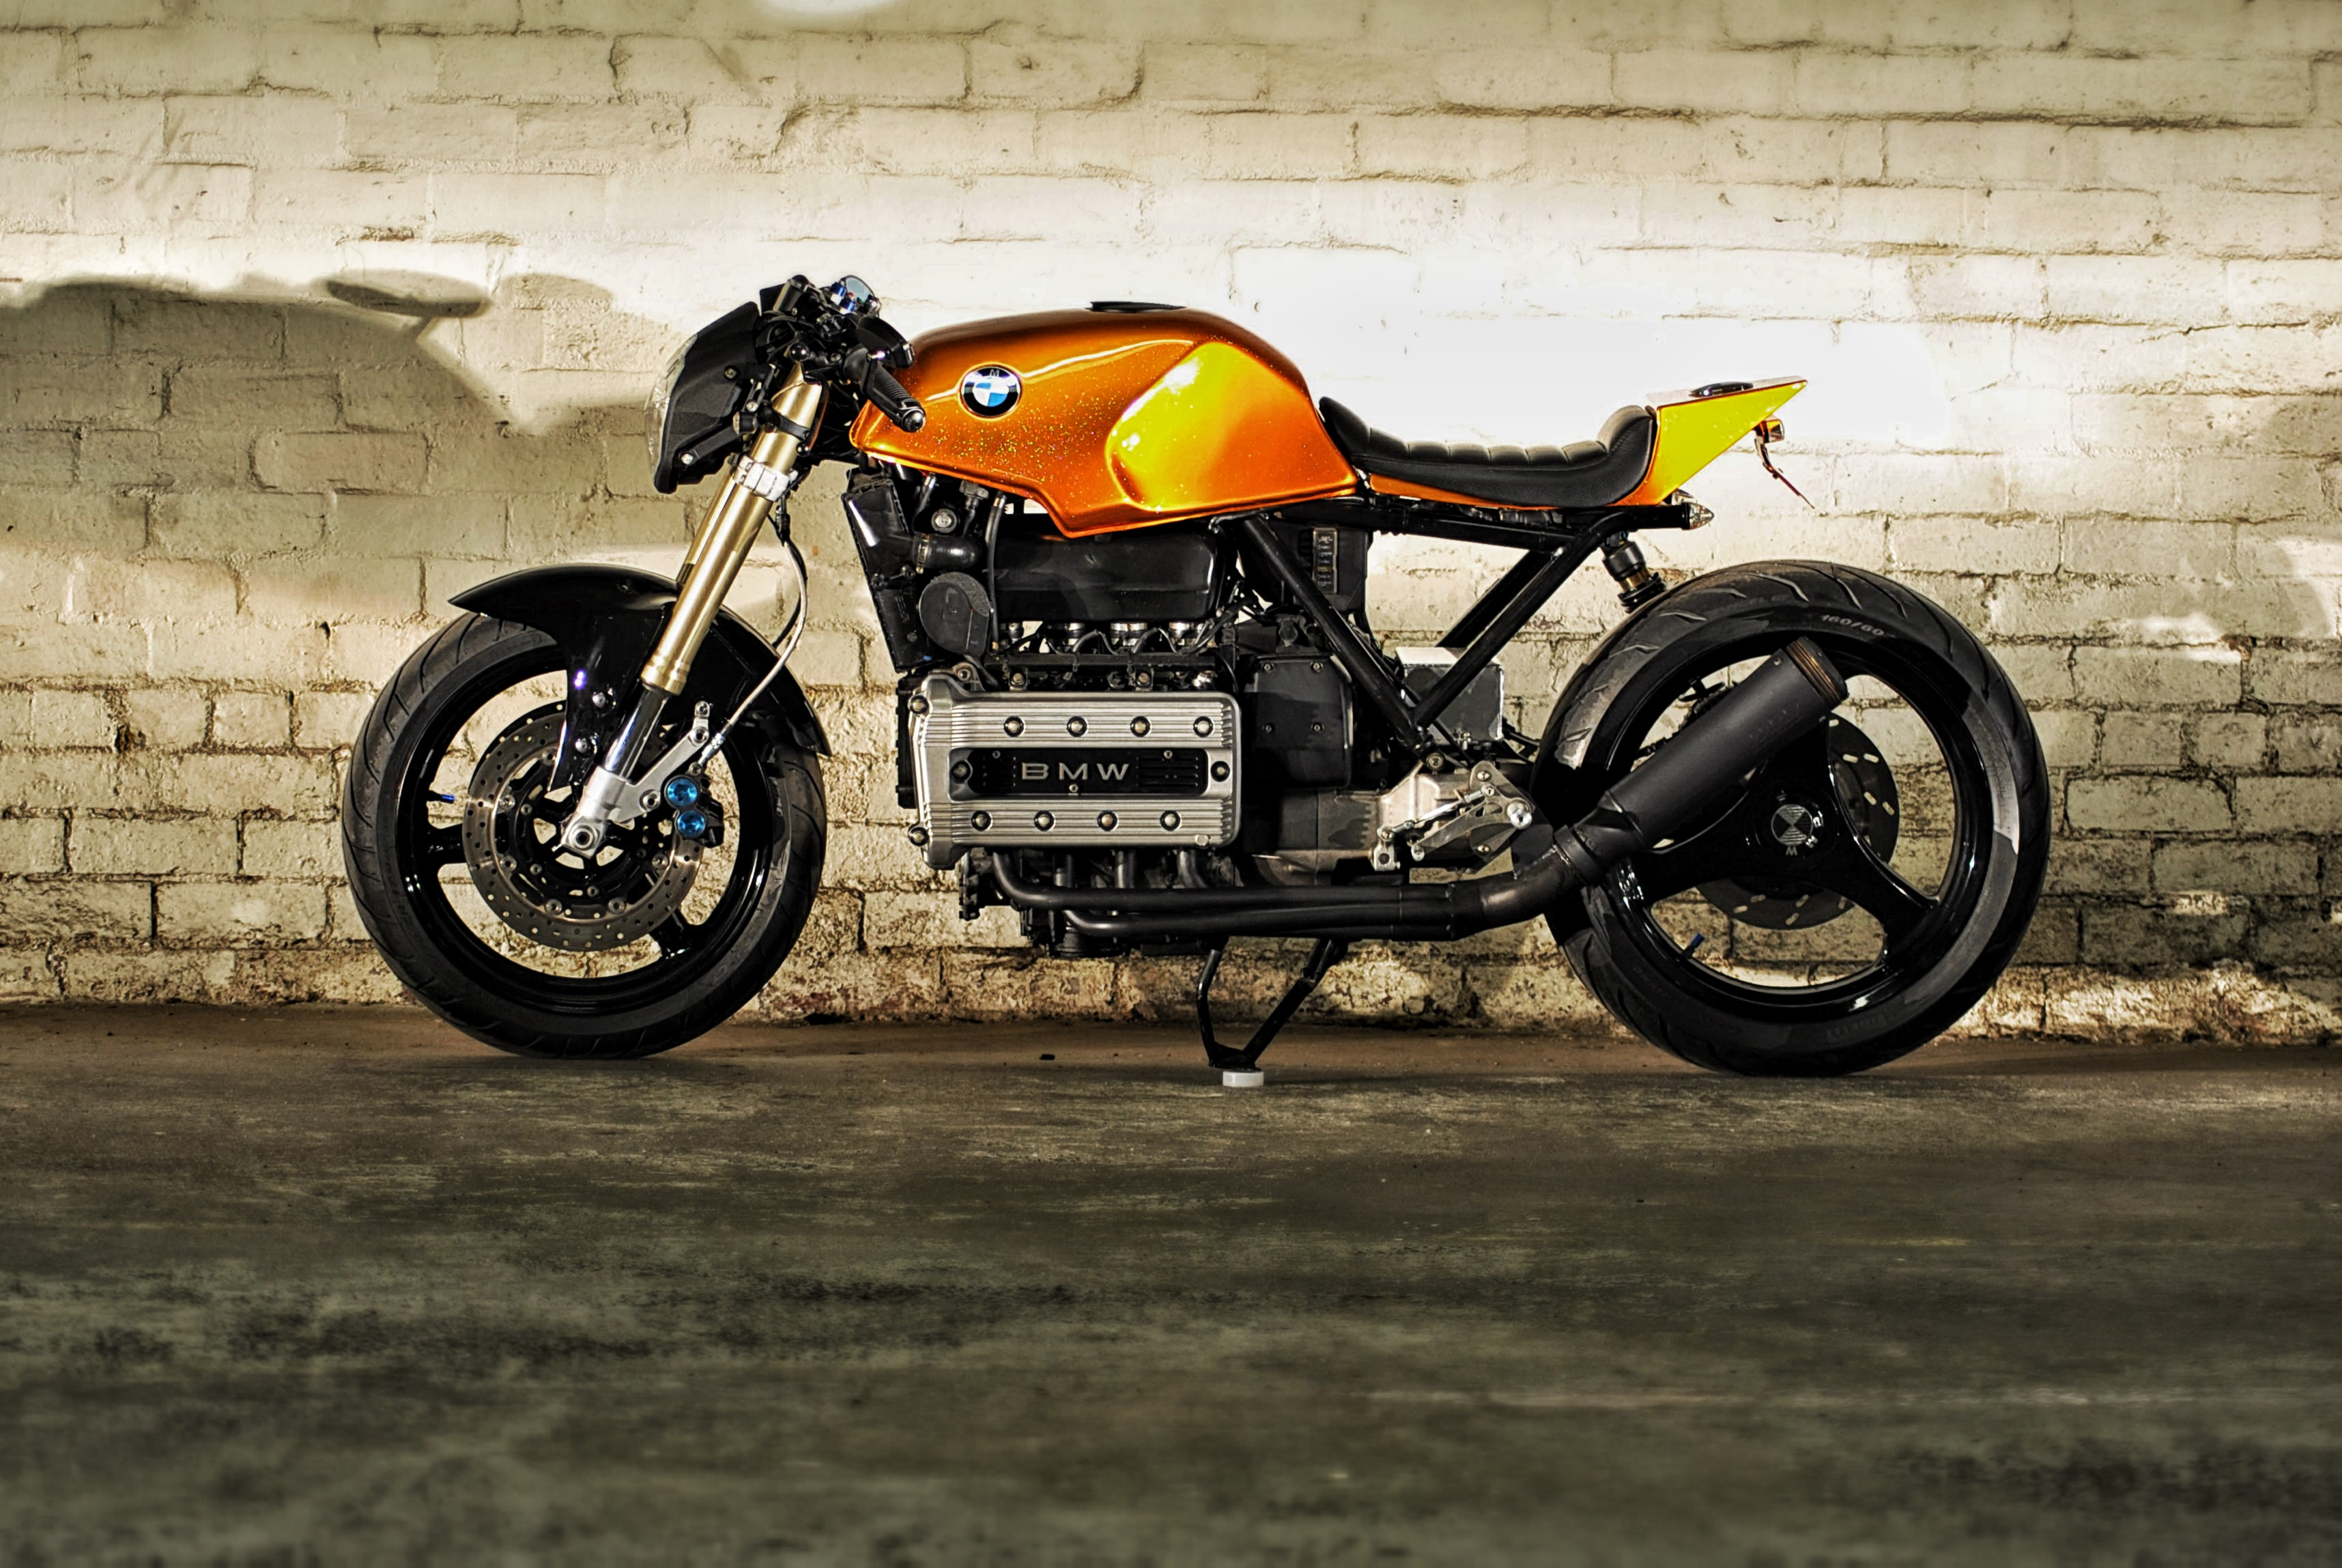 Battery Wiring Harness Bmw K100lt Electrical Diagrams Motorcycle K100 The Project Dont Call It A Caf Racer